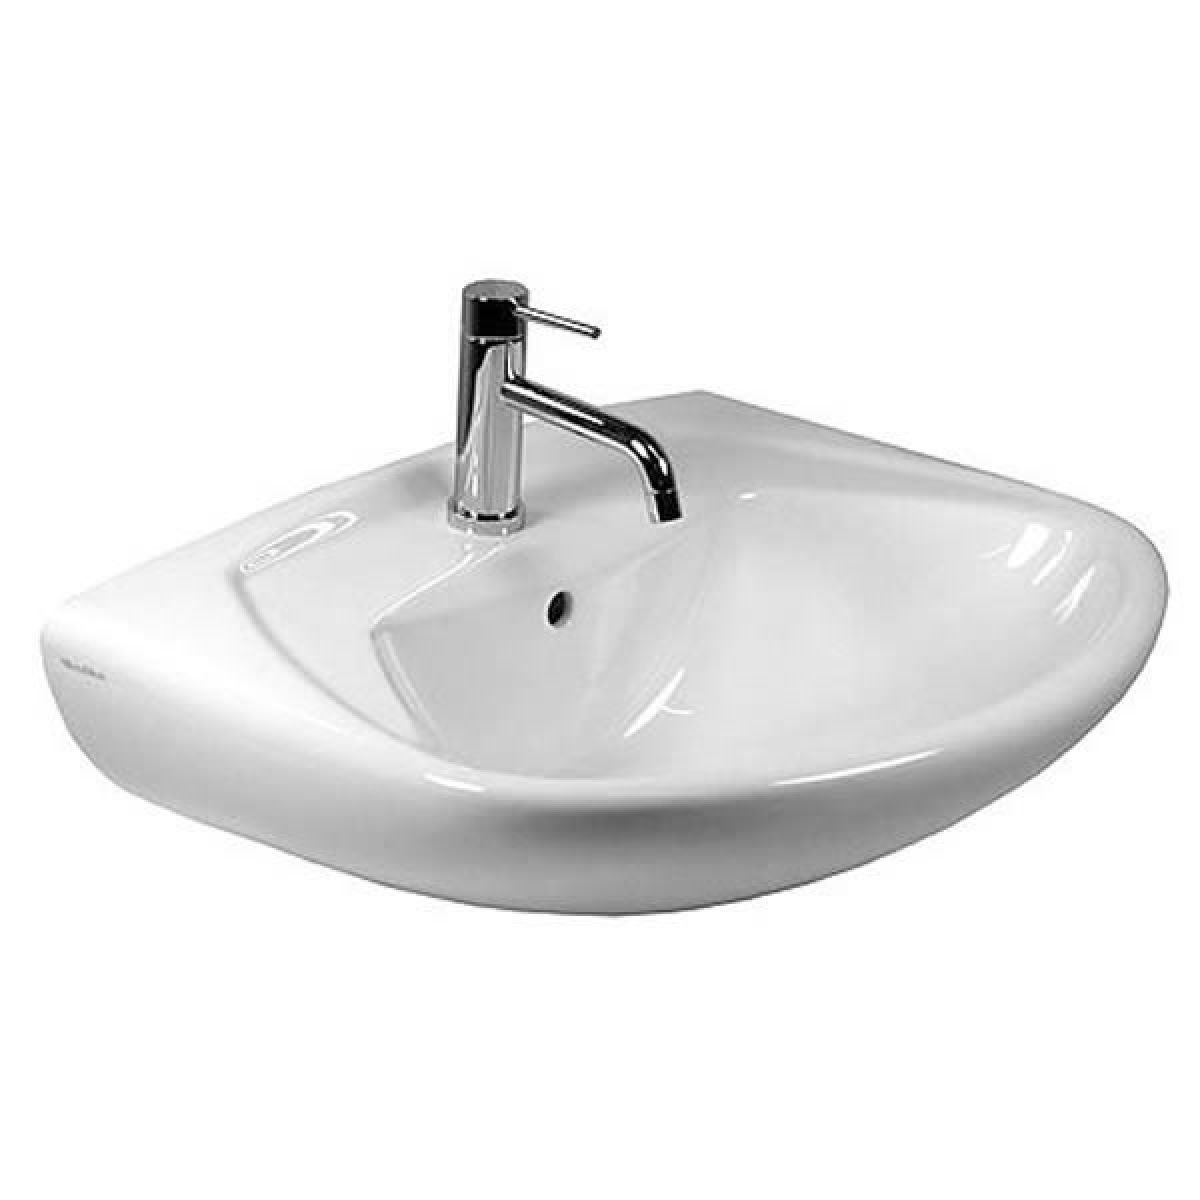 villeroy boch omnia classic 500mm washbasin uk bathrooms. Black Bedroom Furniture Sets. Home Design Ideas